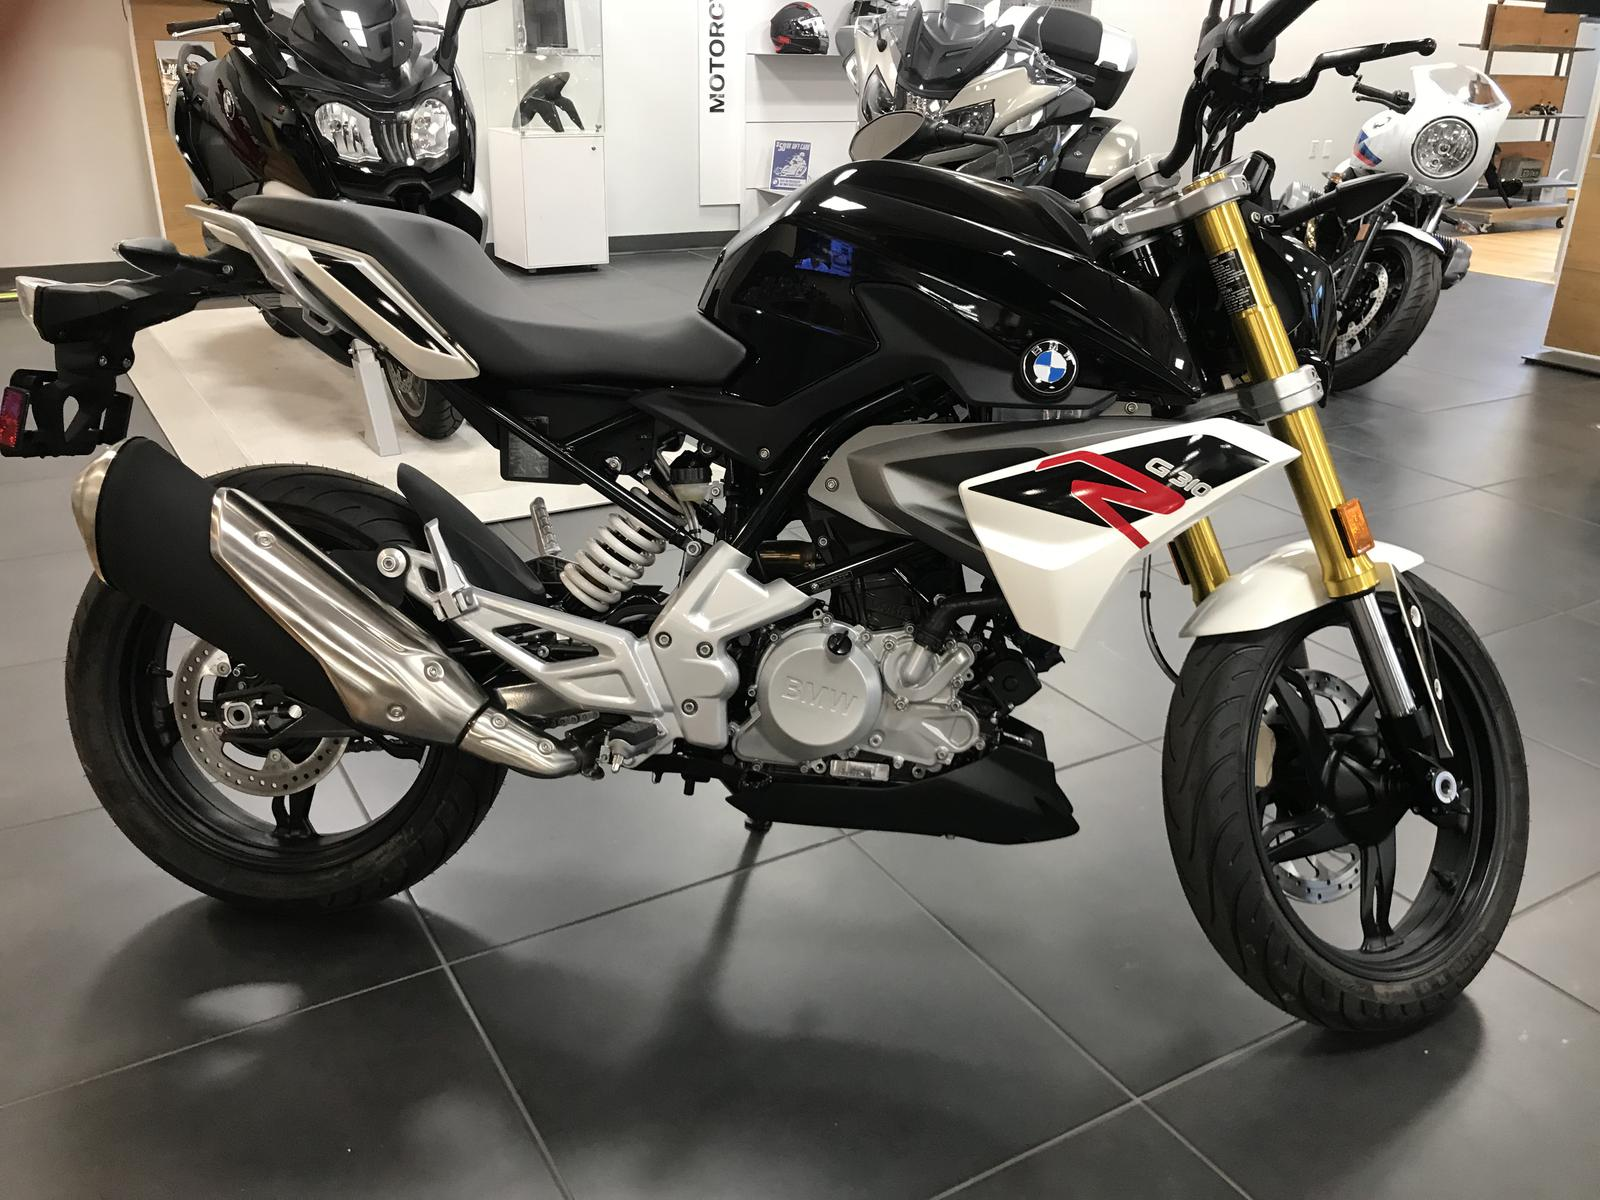 2018 Bmw G310r For Sale In Peoria Az Go Az Motorcycles In Peoria